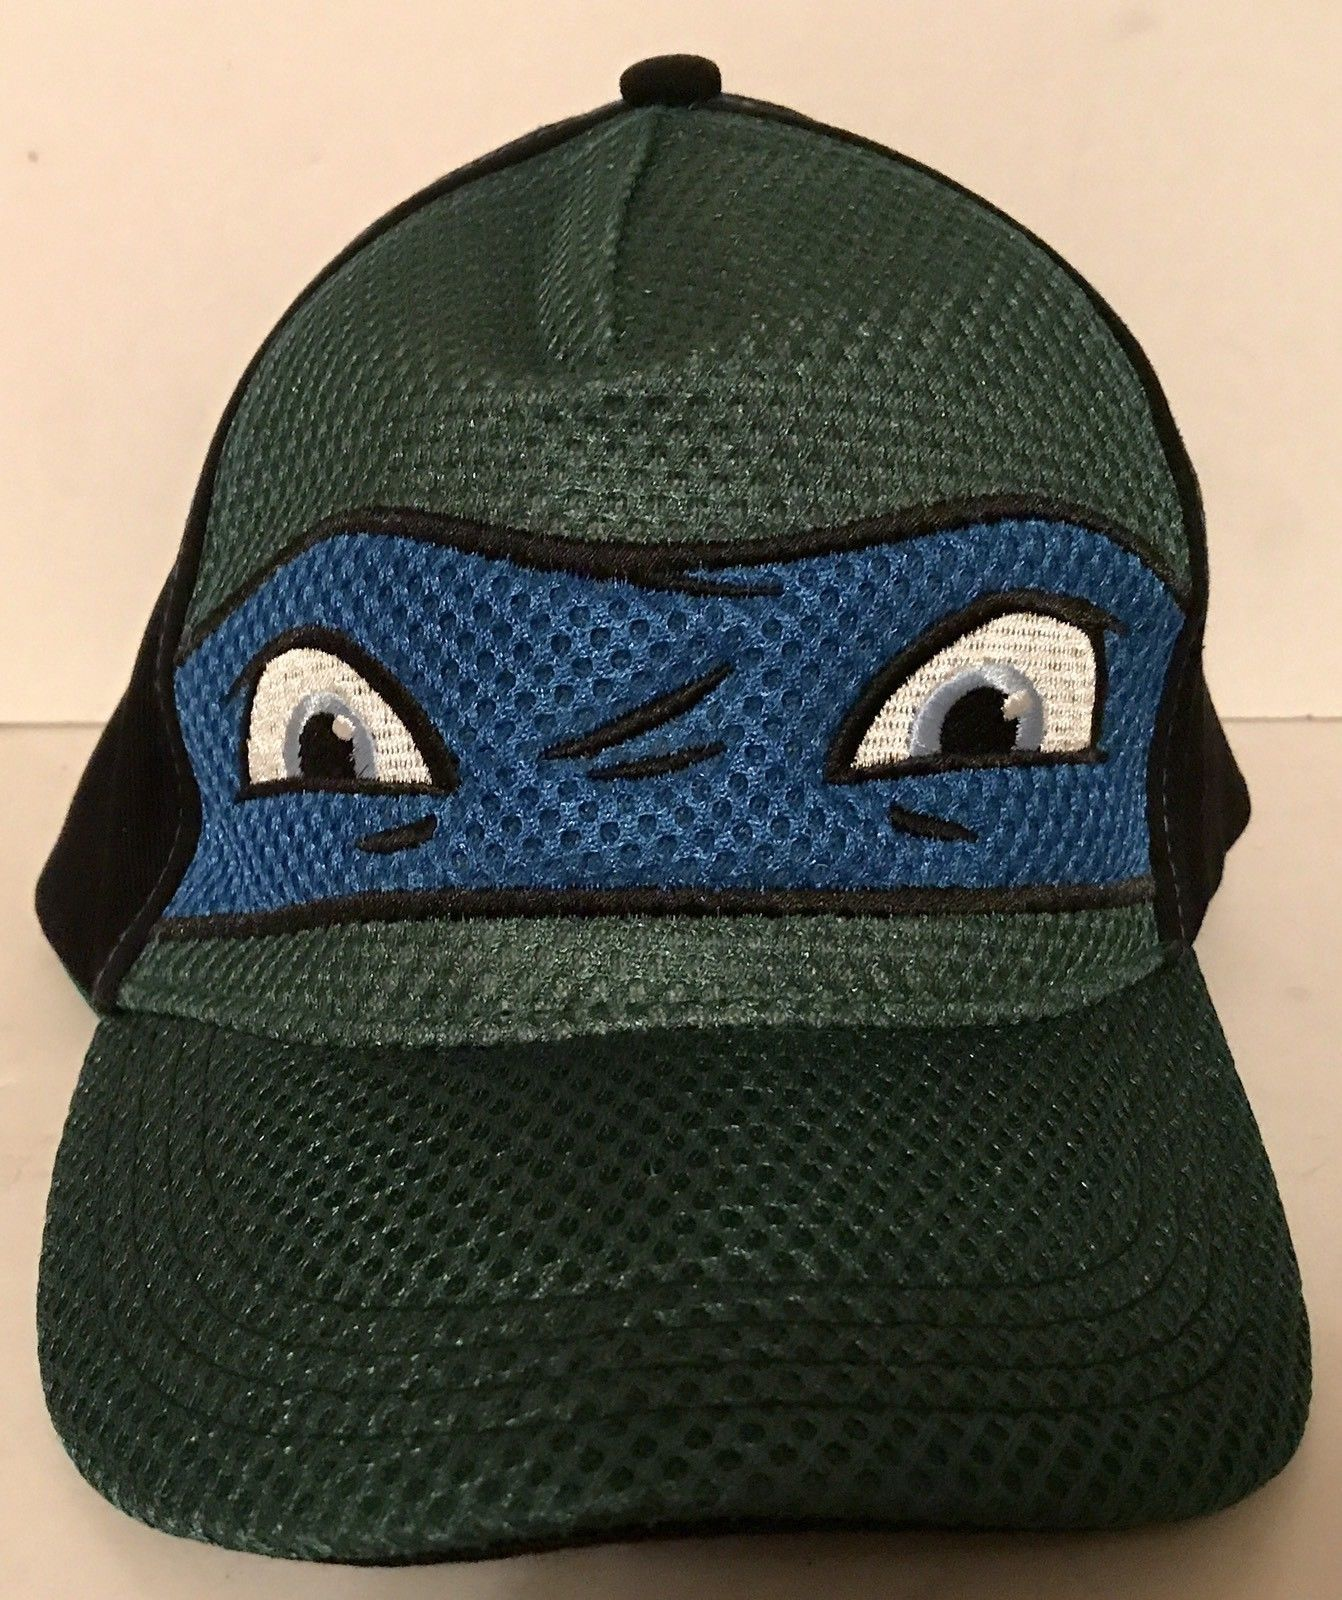 98f53588aab Teenage Mutant Ninja Turtles LEONARDO Boy s and 50 similar items